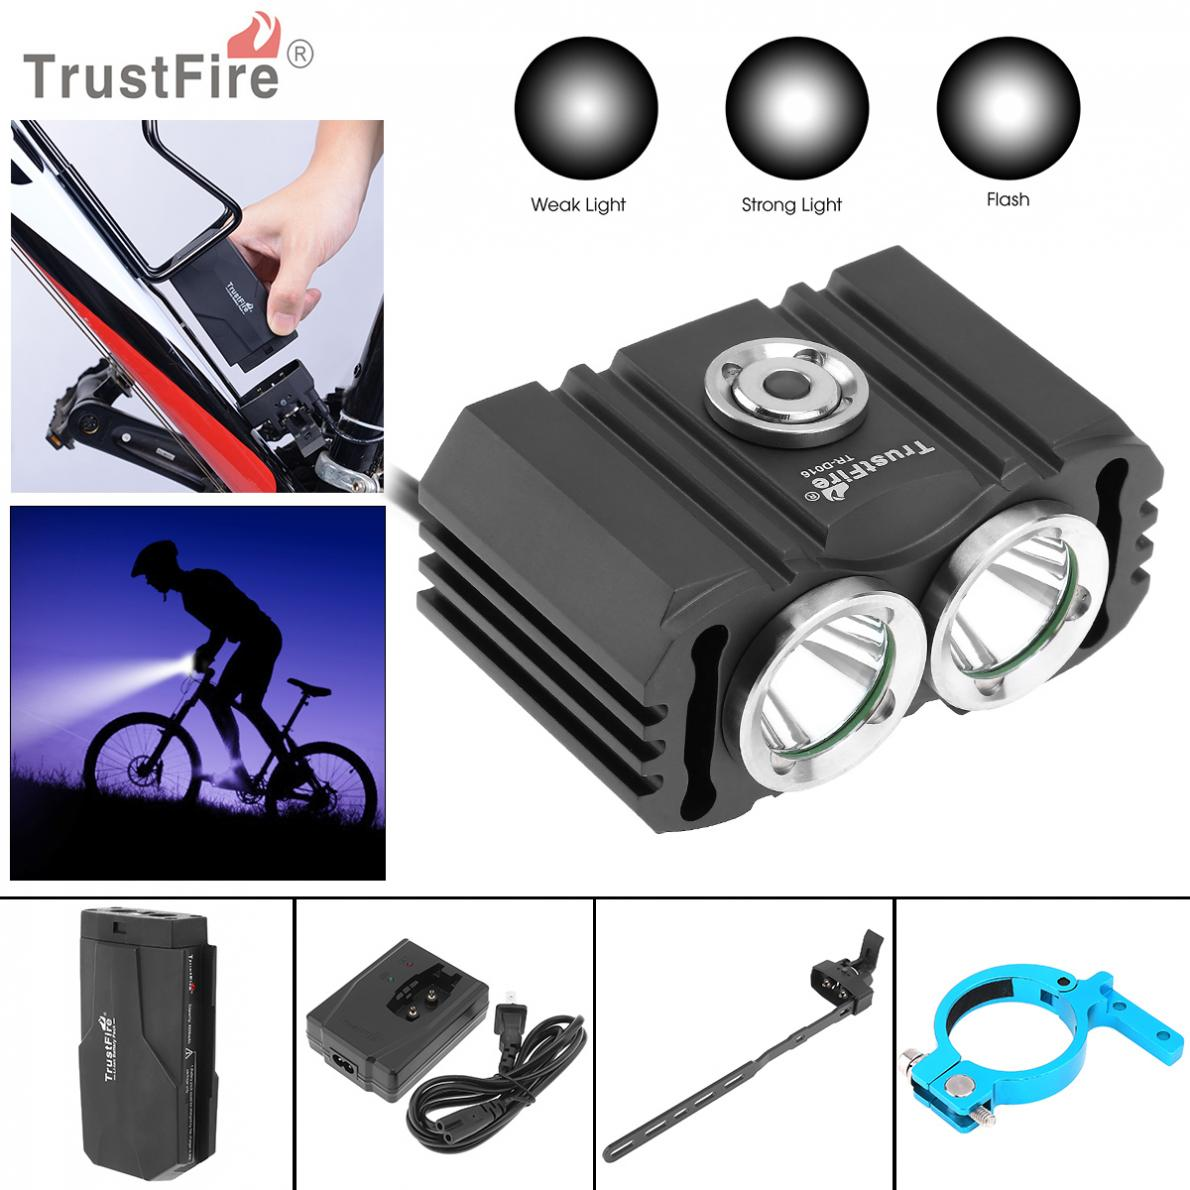 TrustFire 3 Modes D016 2x XM-L2 LED 4.2V Waterproof Bicycle Head Light with 6200mAh Battery Pack Kits Special for Bicycle Light trustfire tr d017 usb bike light 2000 lumens 3 mode xm l l2 led bicycle front light with battery pack for cycling